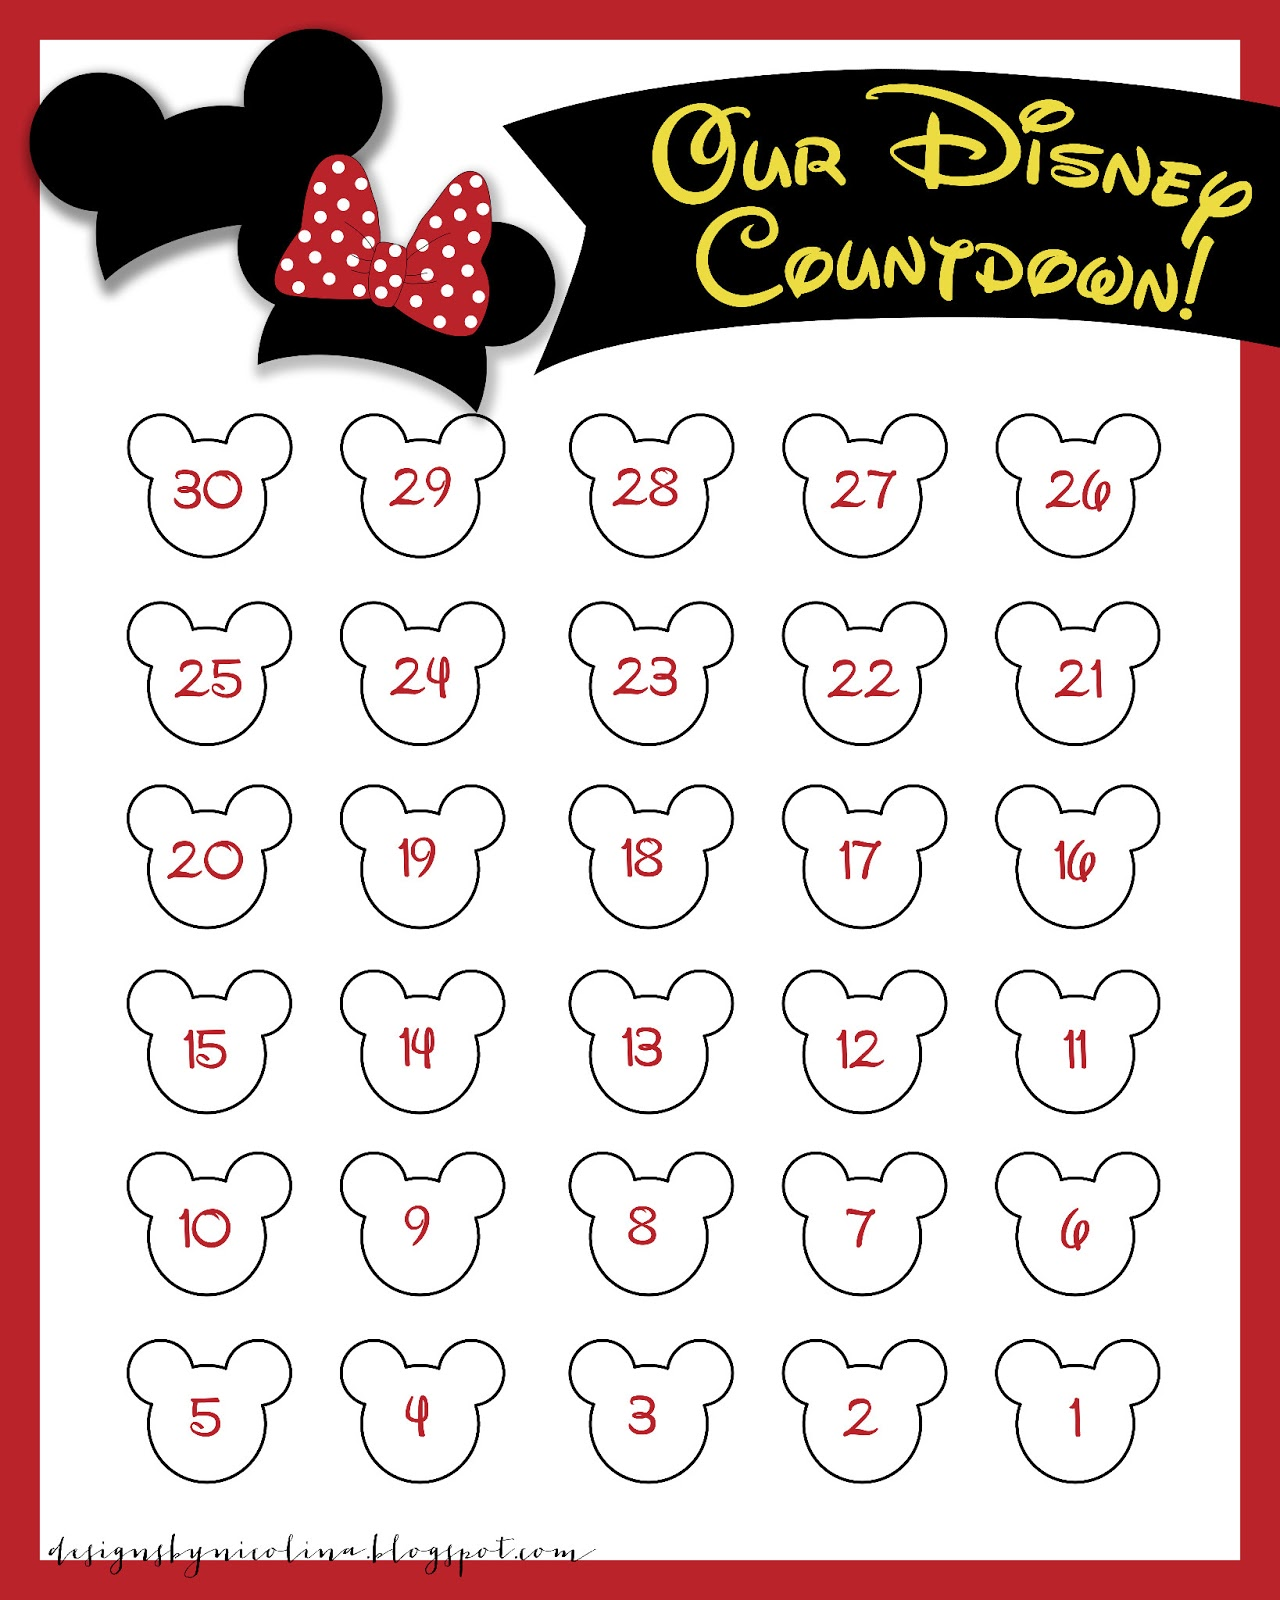 6 Images of Disney Countdown Calendar Printable